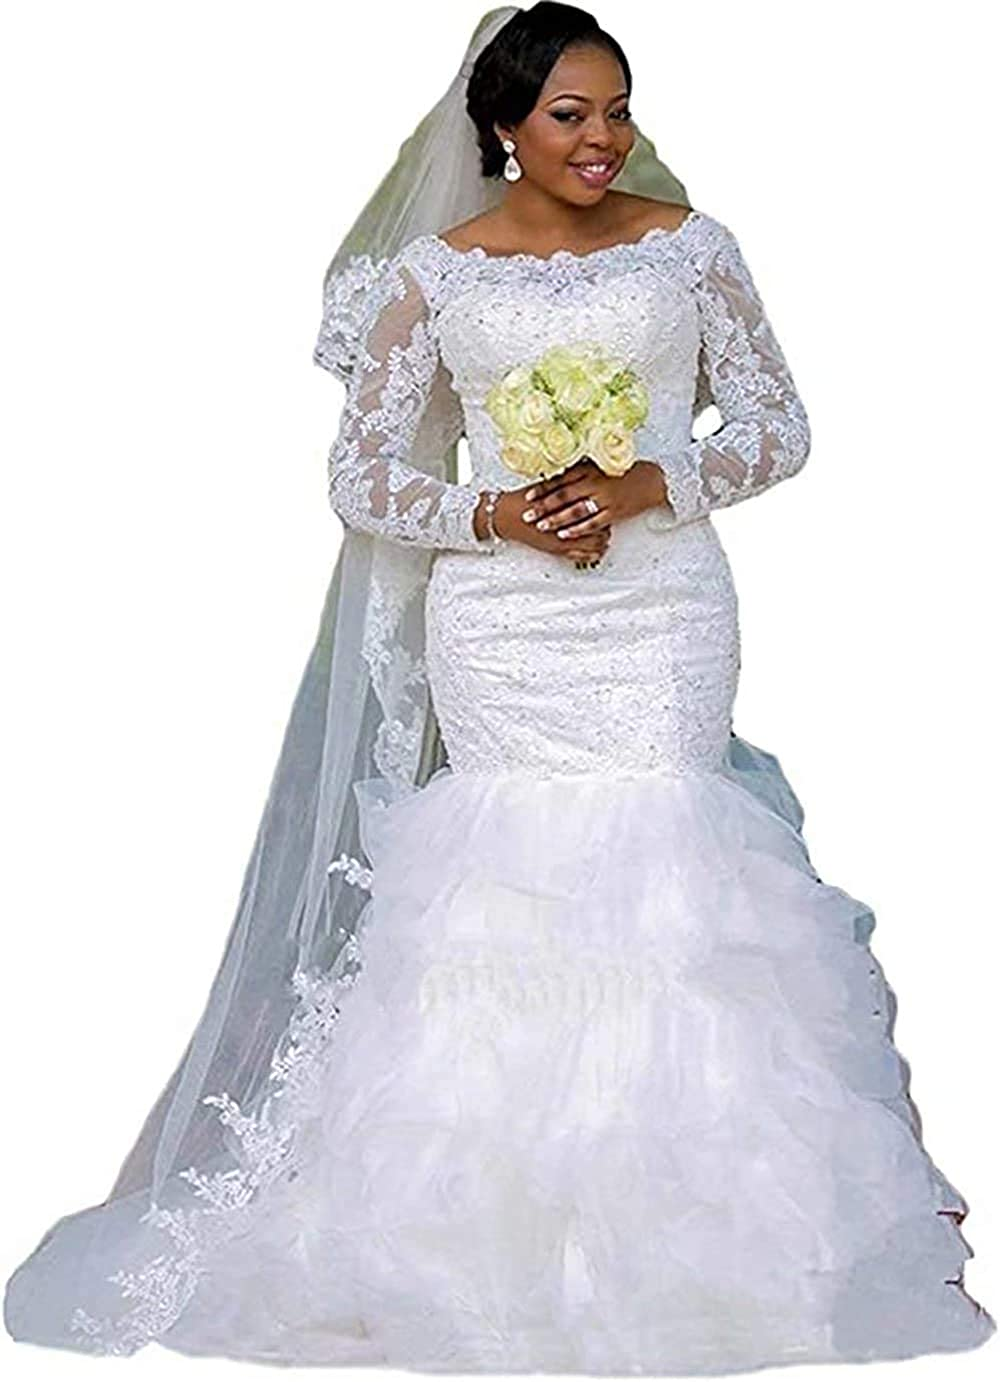 iluckin Plus Size Women's Long Sleeve Appliques Mermaid Lace Wedding Dress with Train for Bride Bridal Gown